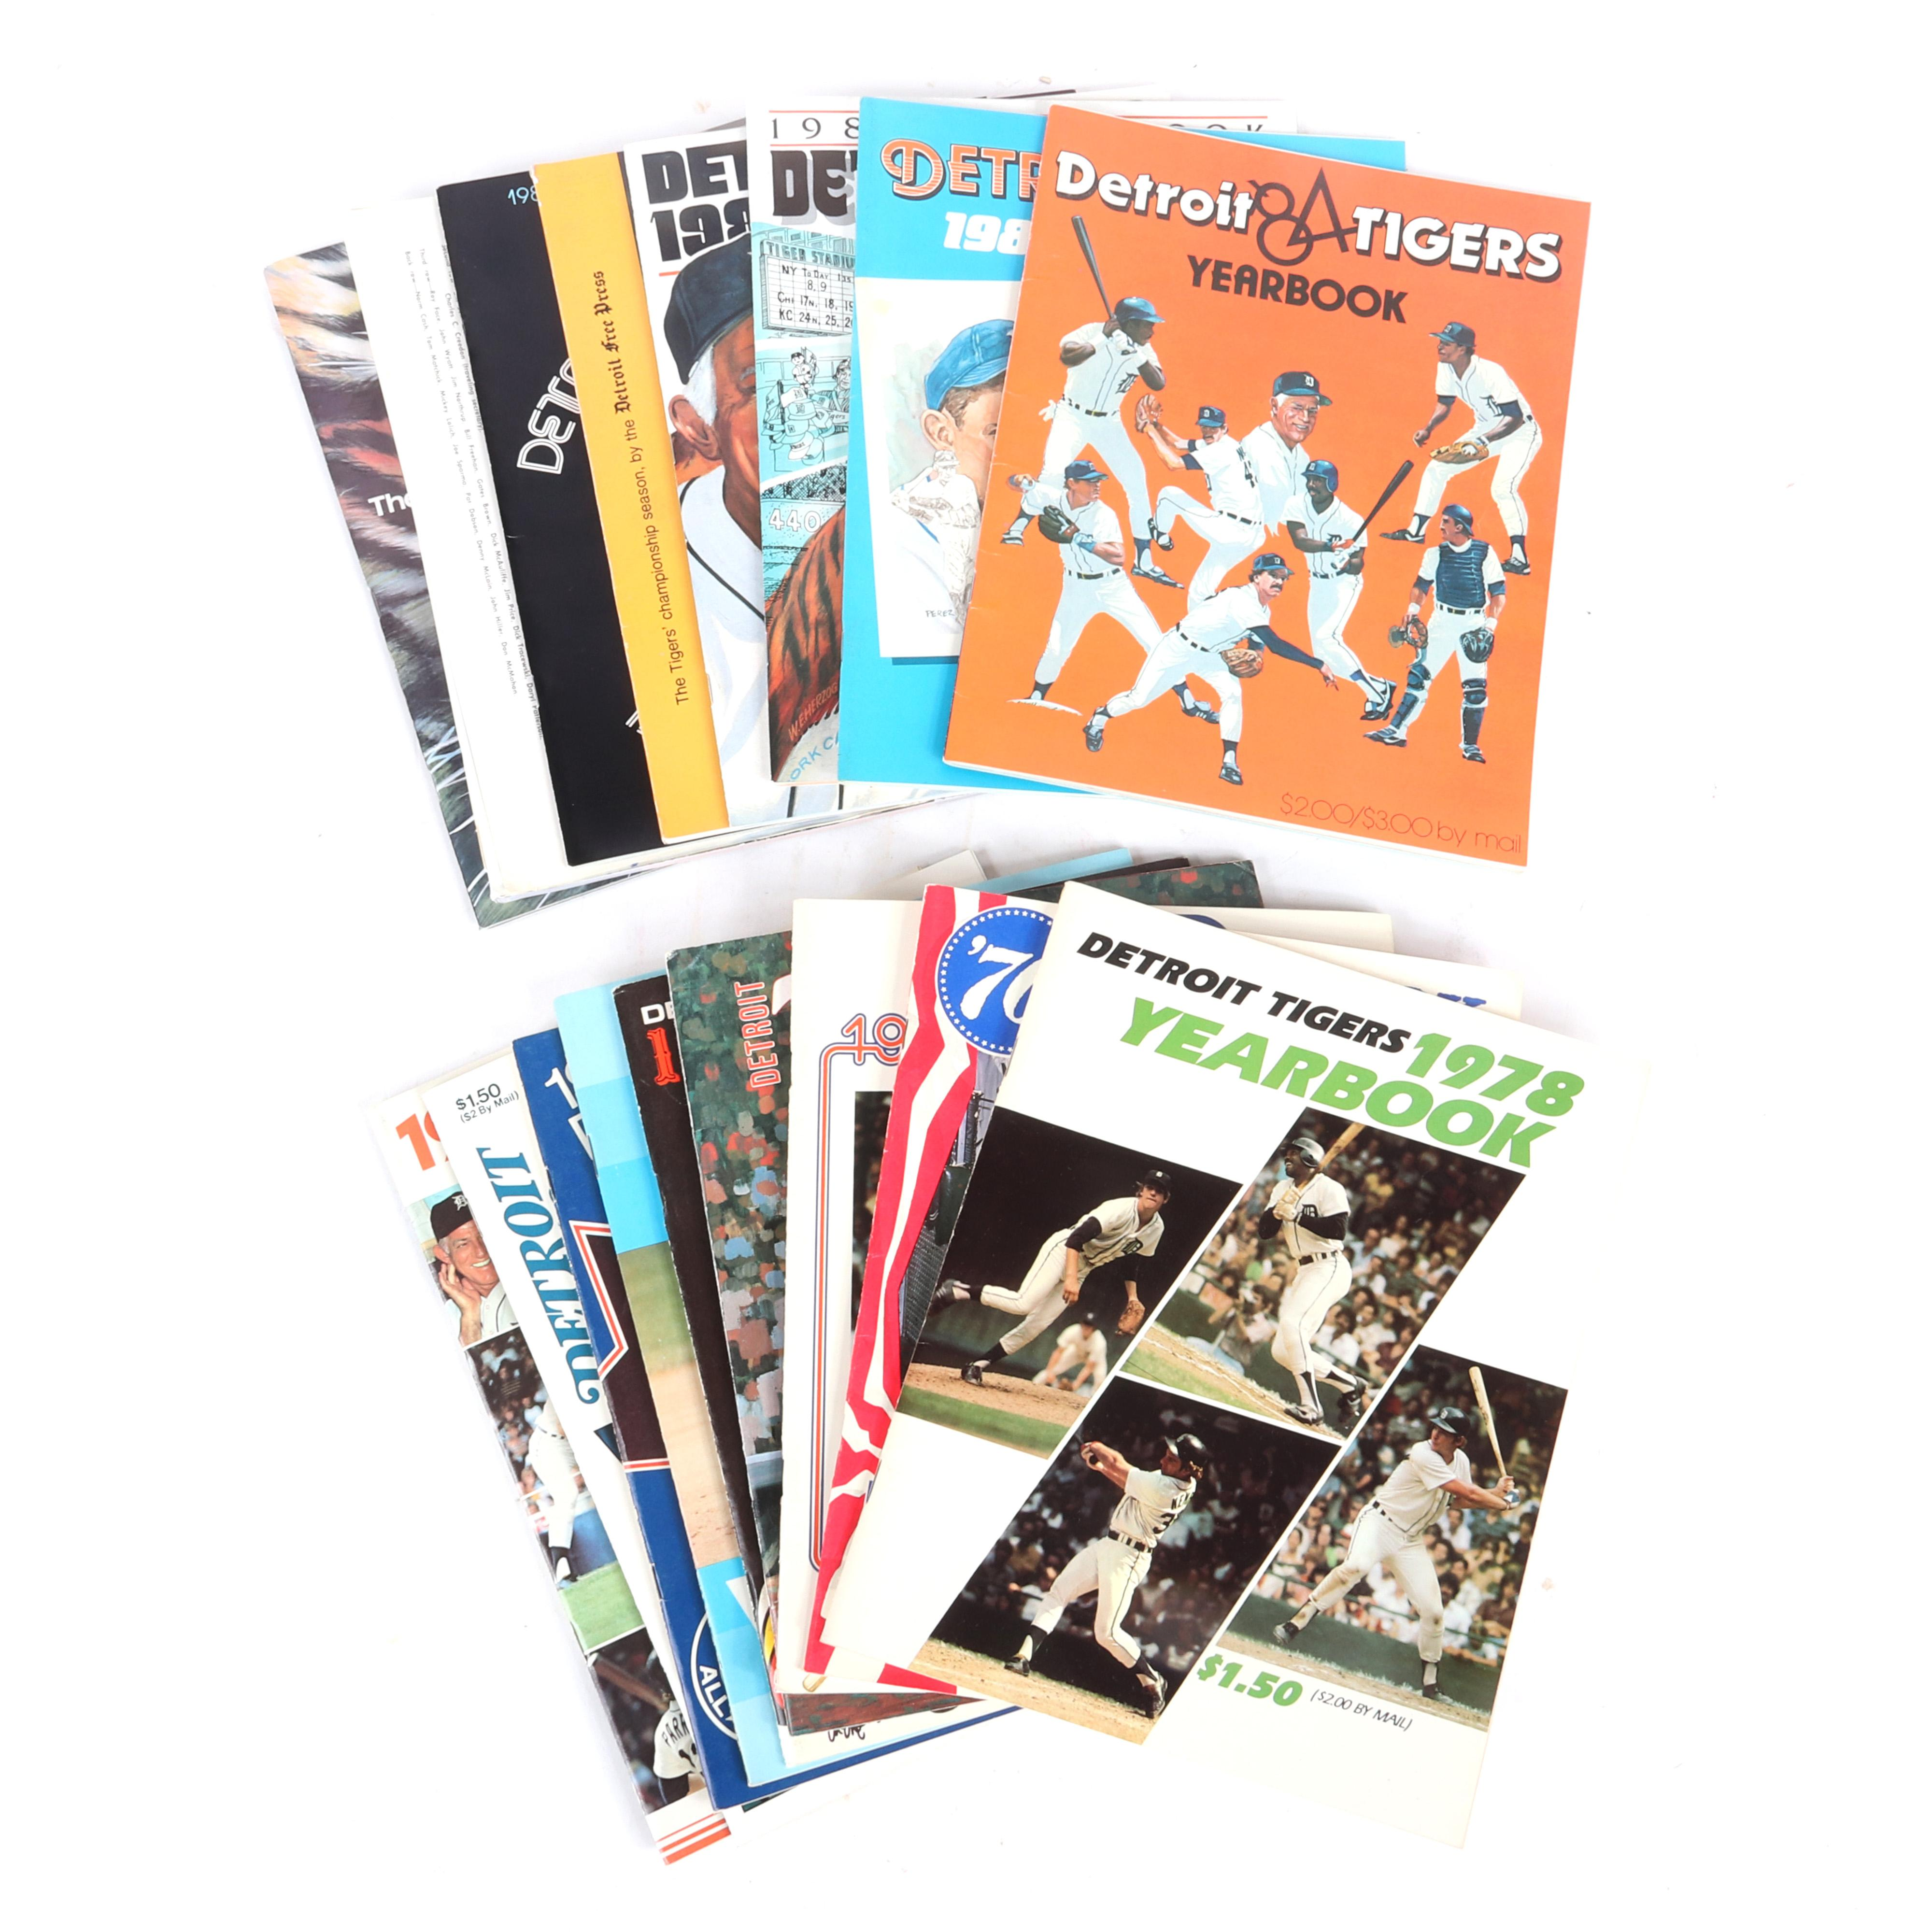 19 Detroit Tigers Yearbooks and Publications